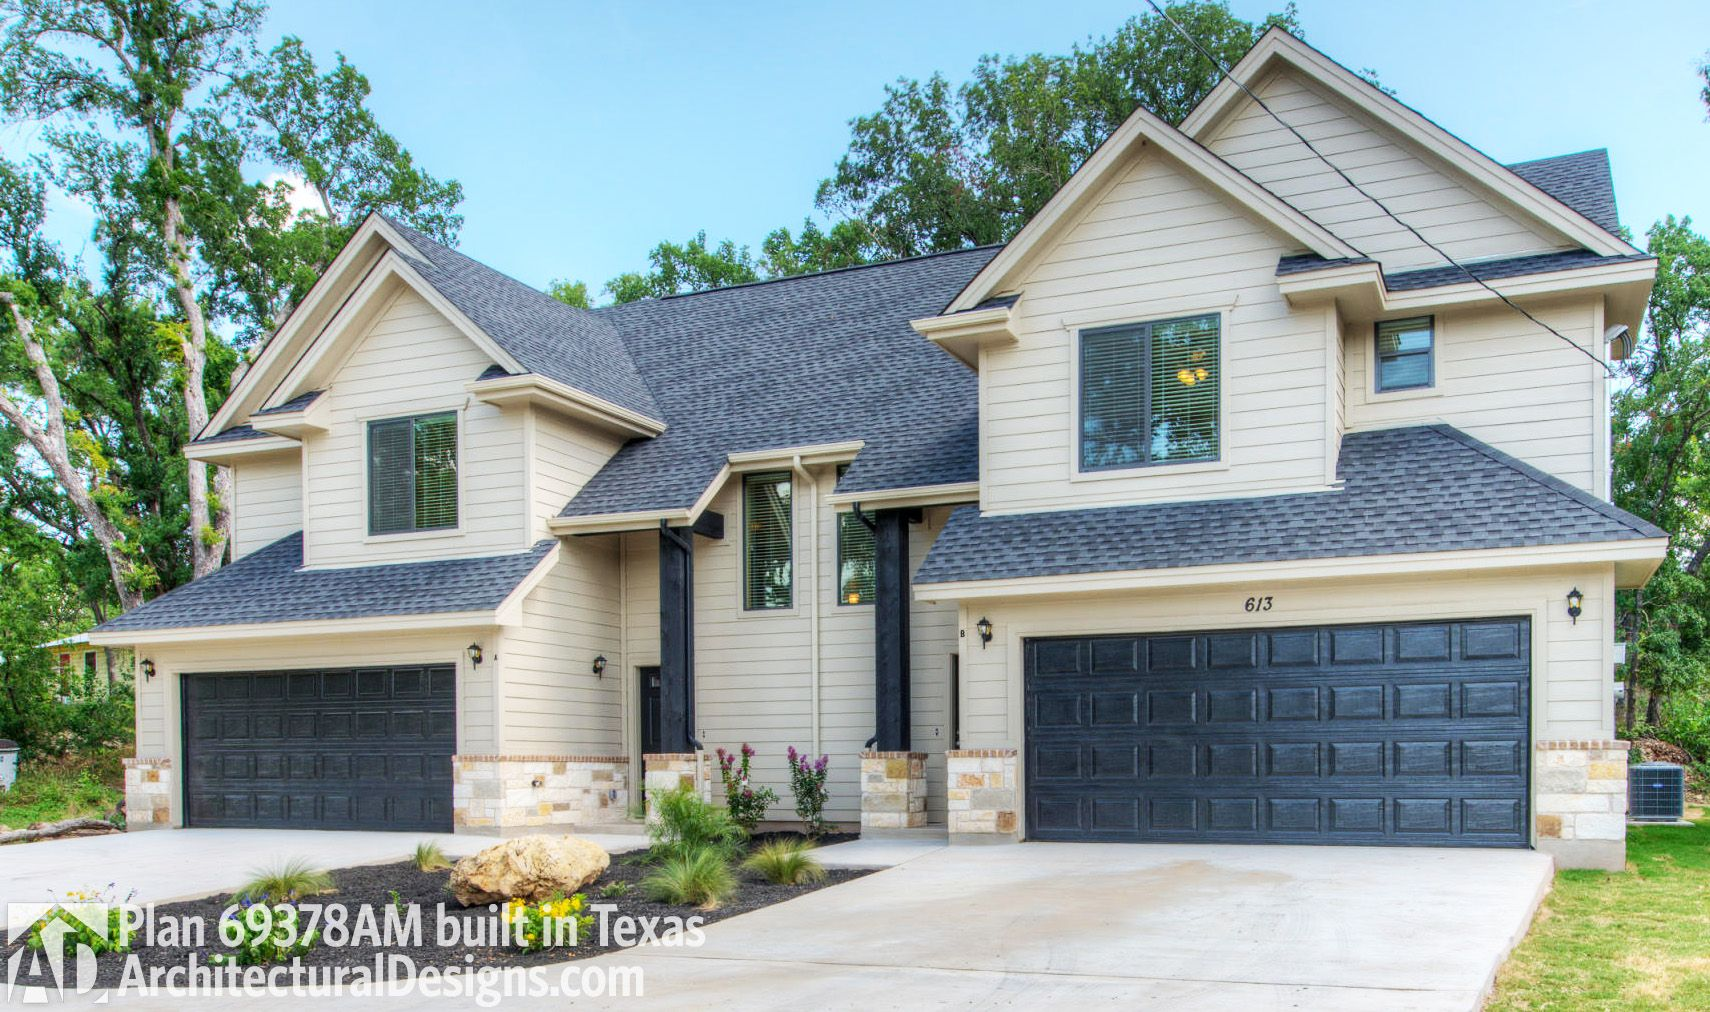 plan 69378am large colonial style duplex plan duplex plans plan 69378am large colonial style duplex plan